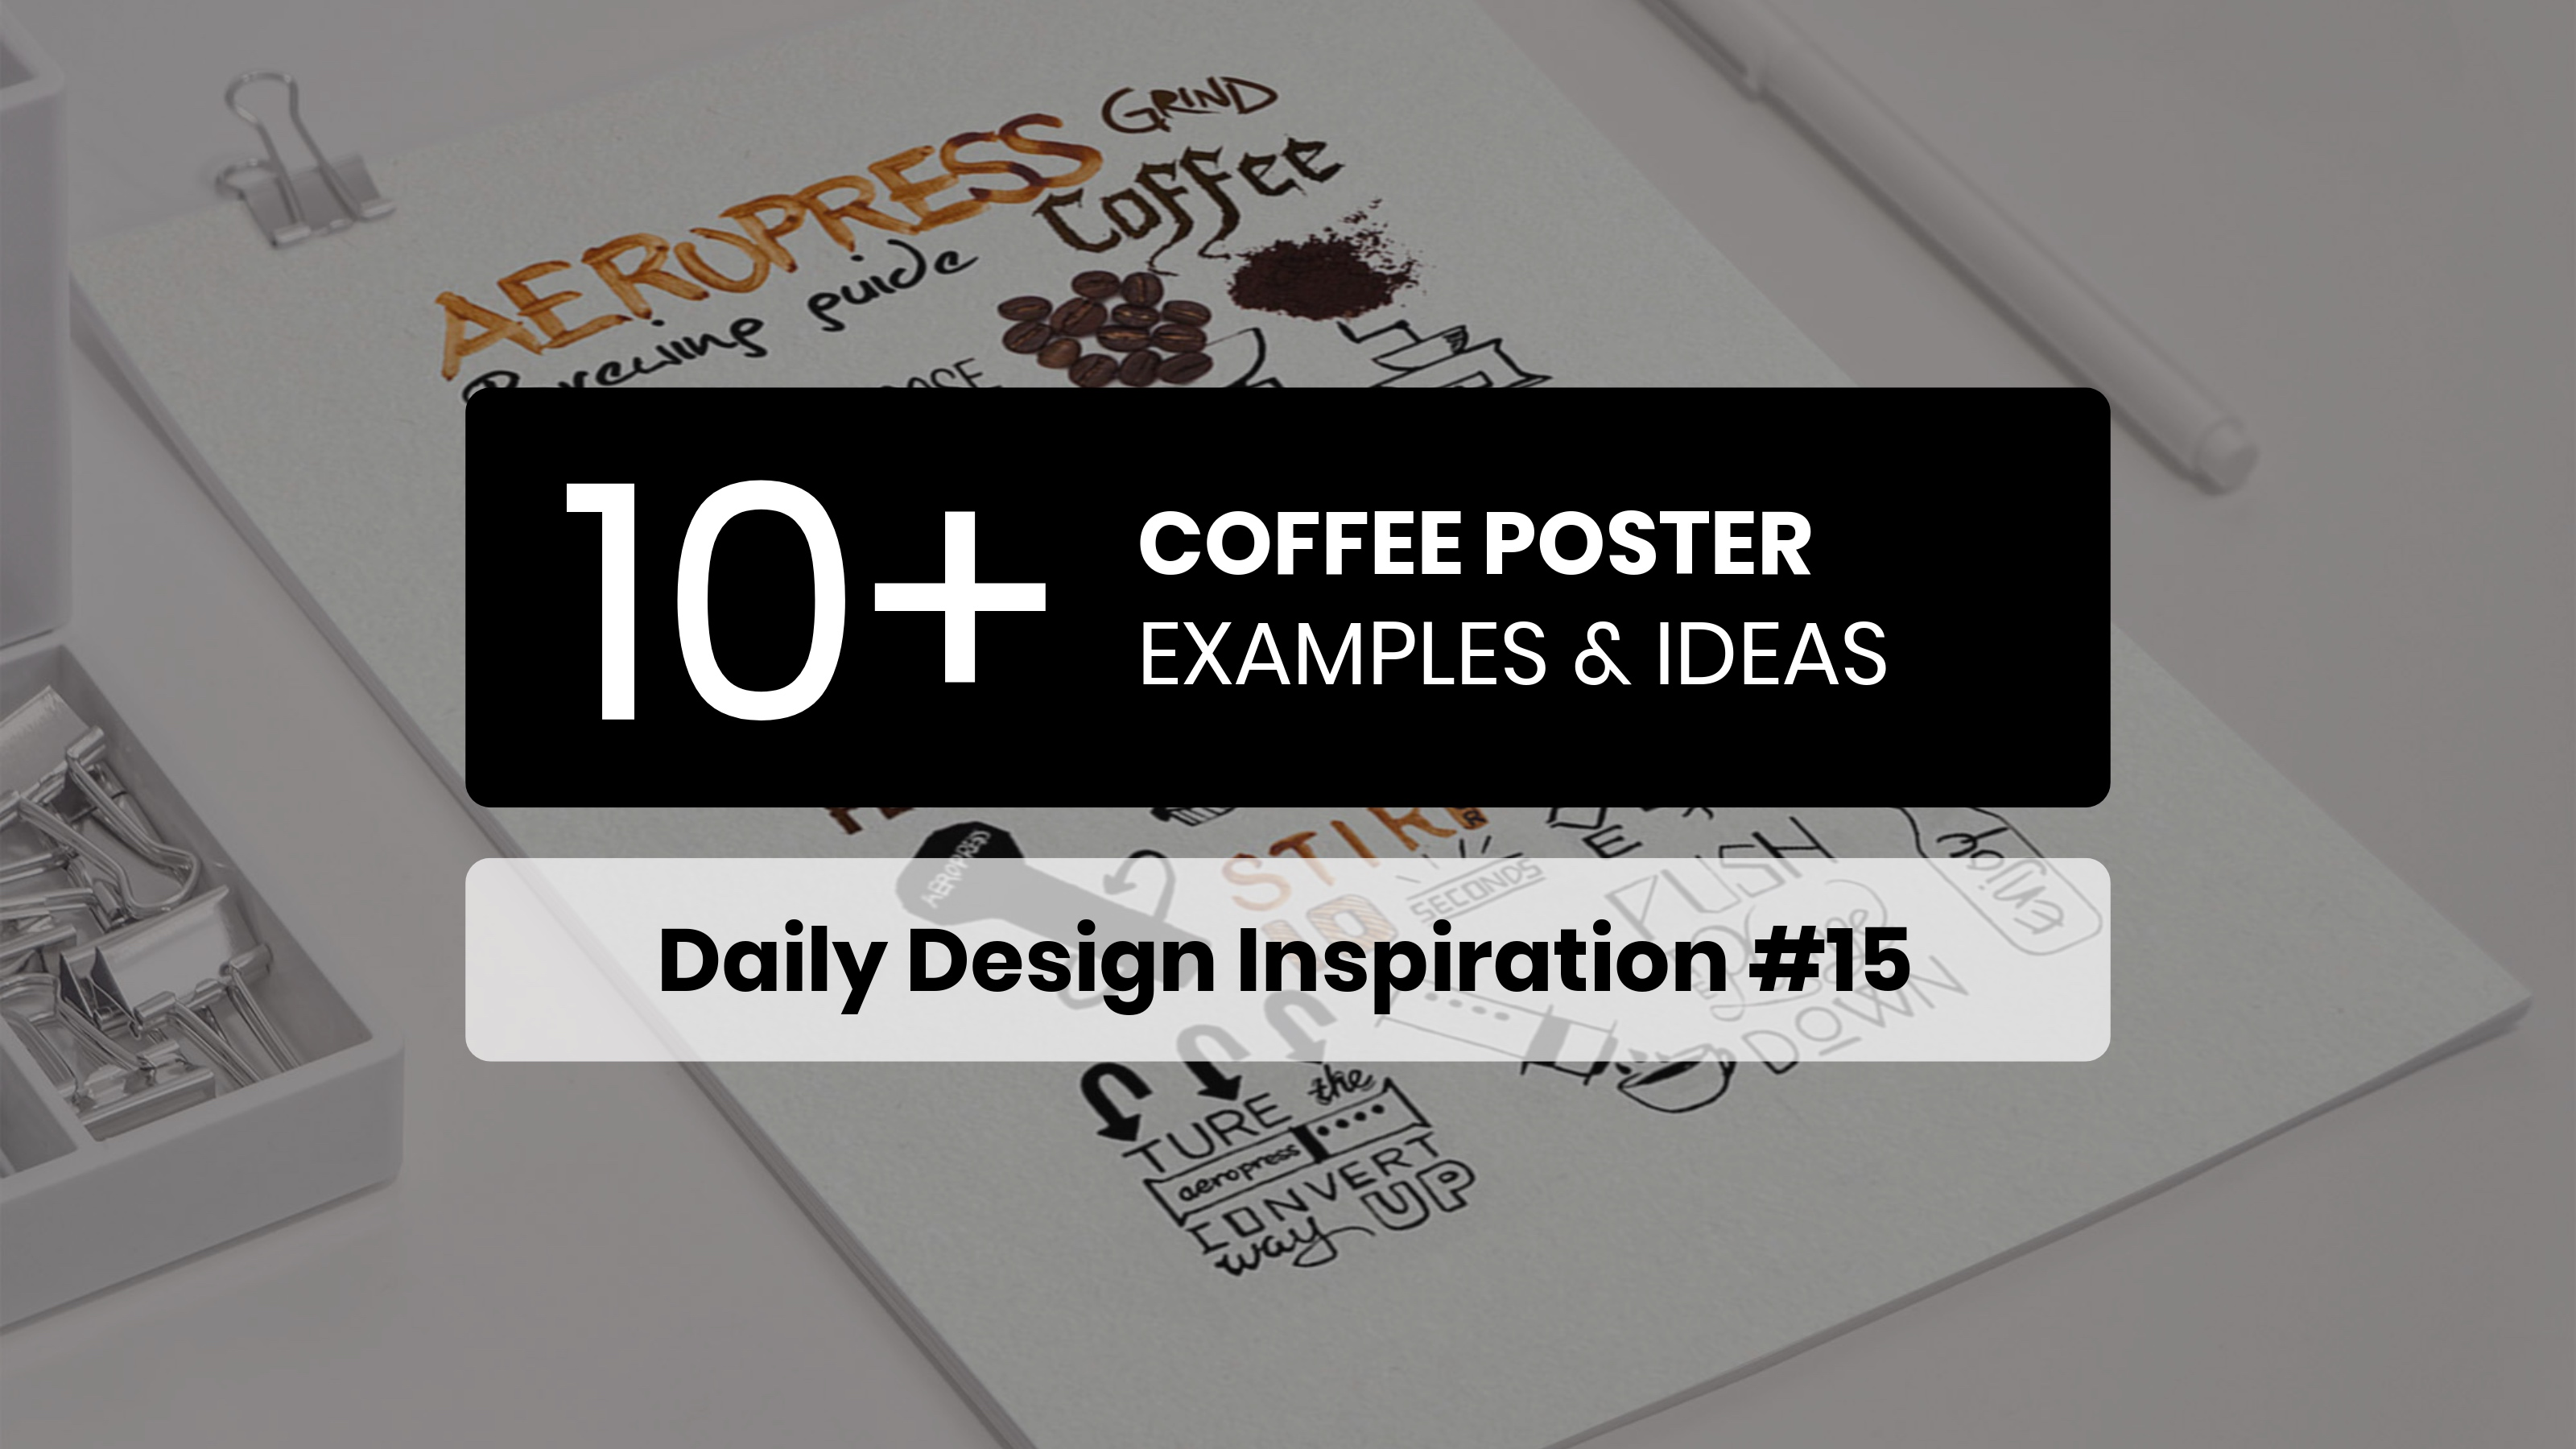 10+ Interesting Coffee Poster Examples & Ideas